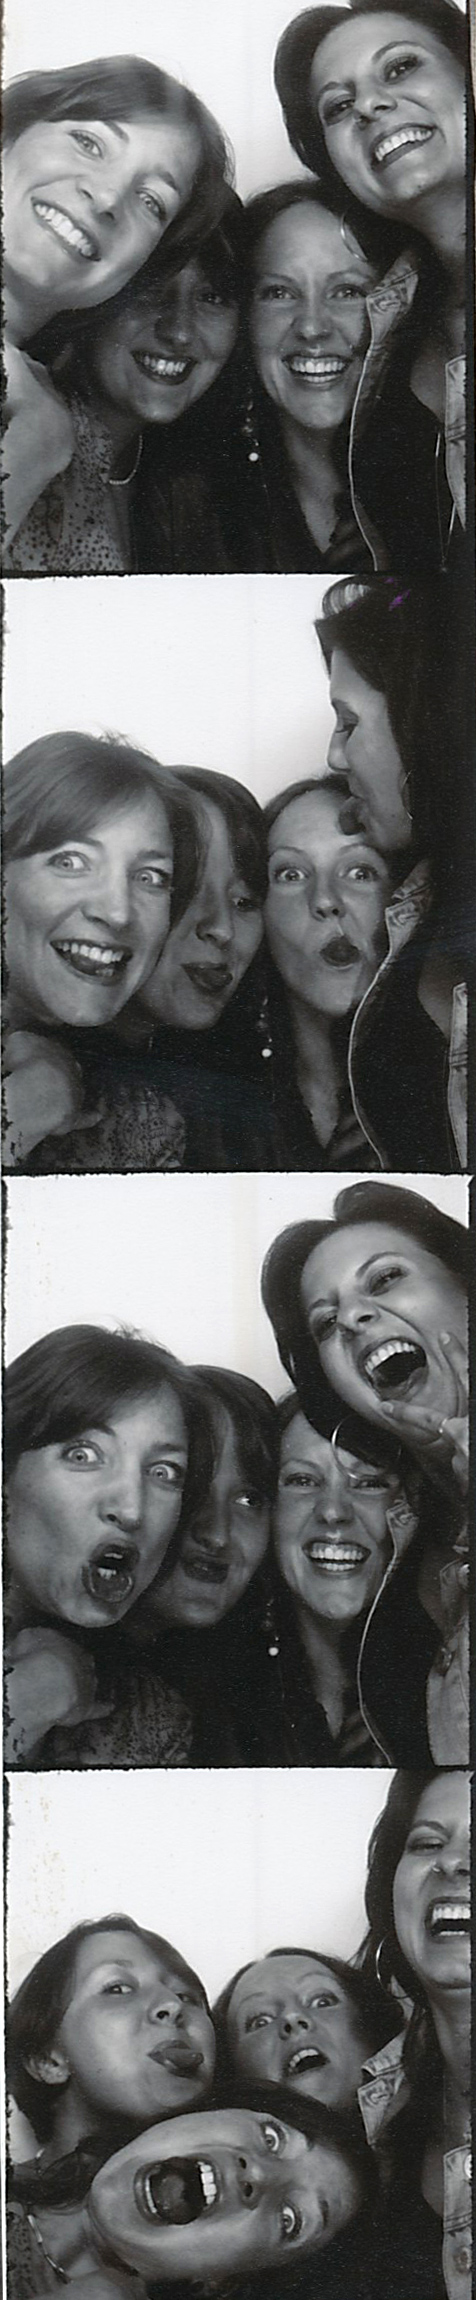 Top Left Design in a Photo Booth